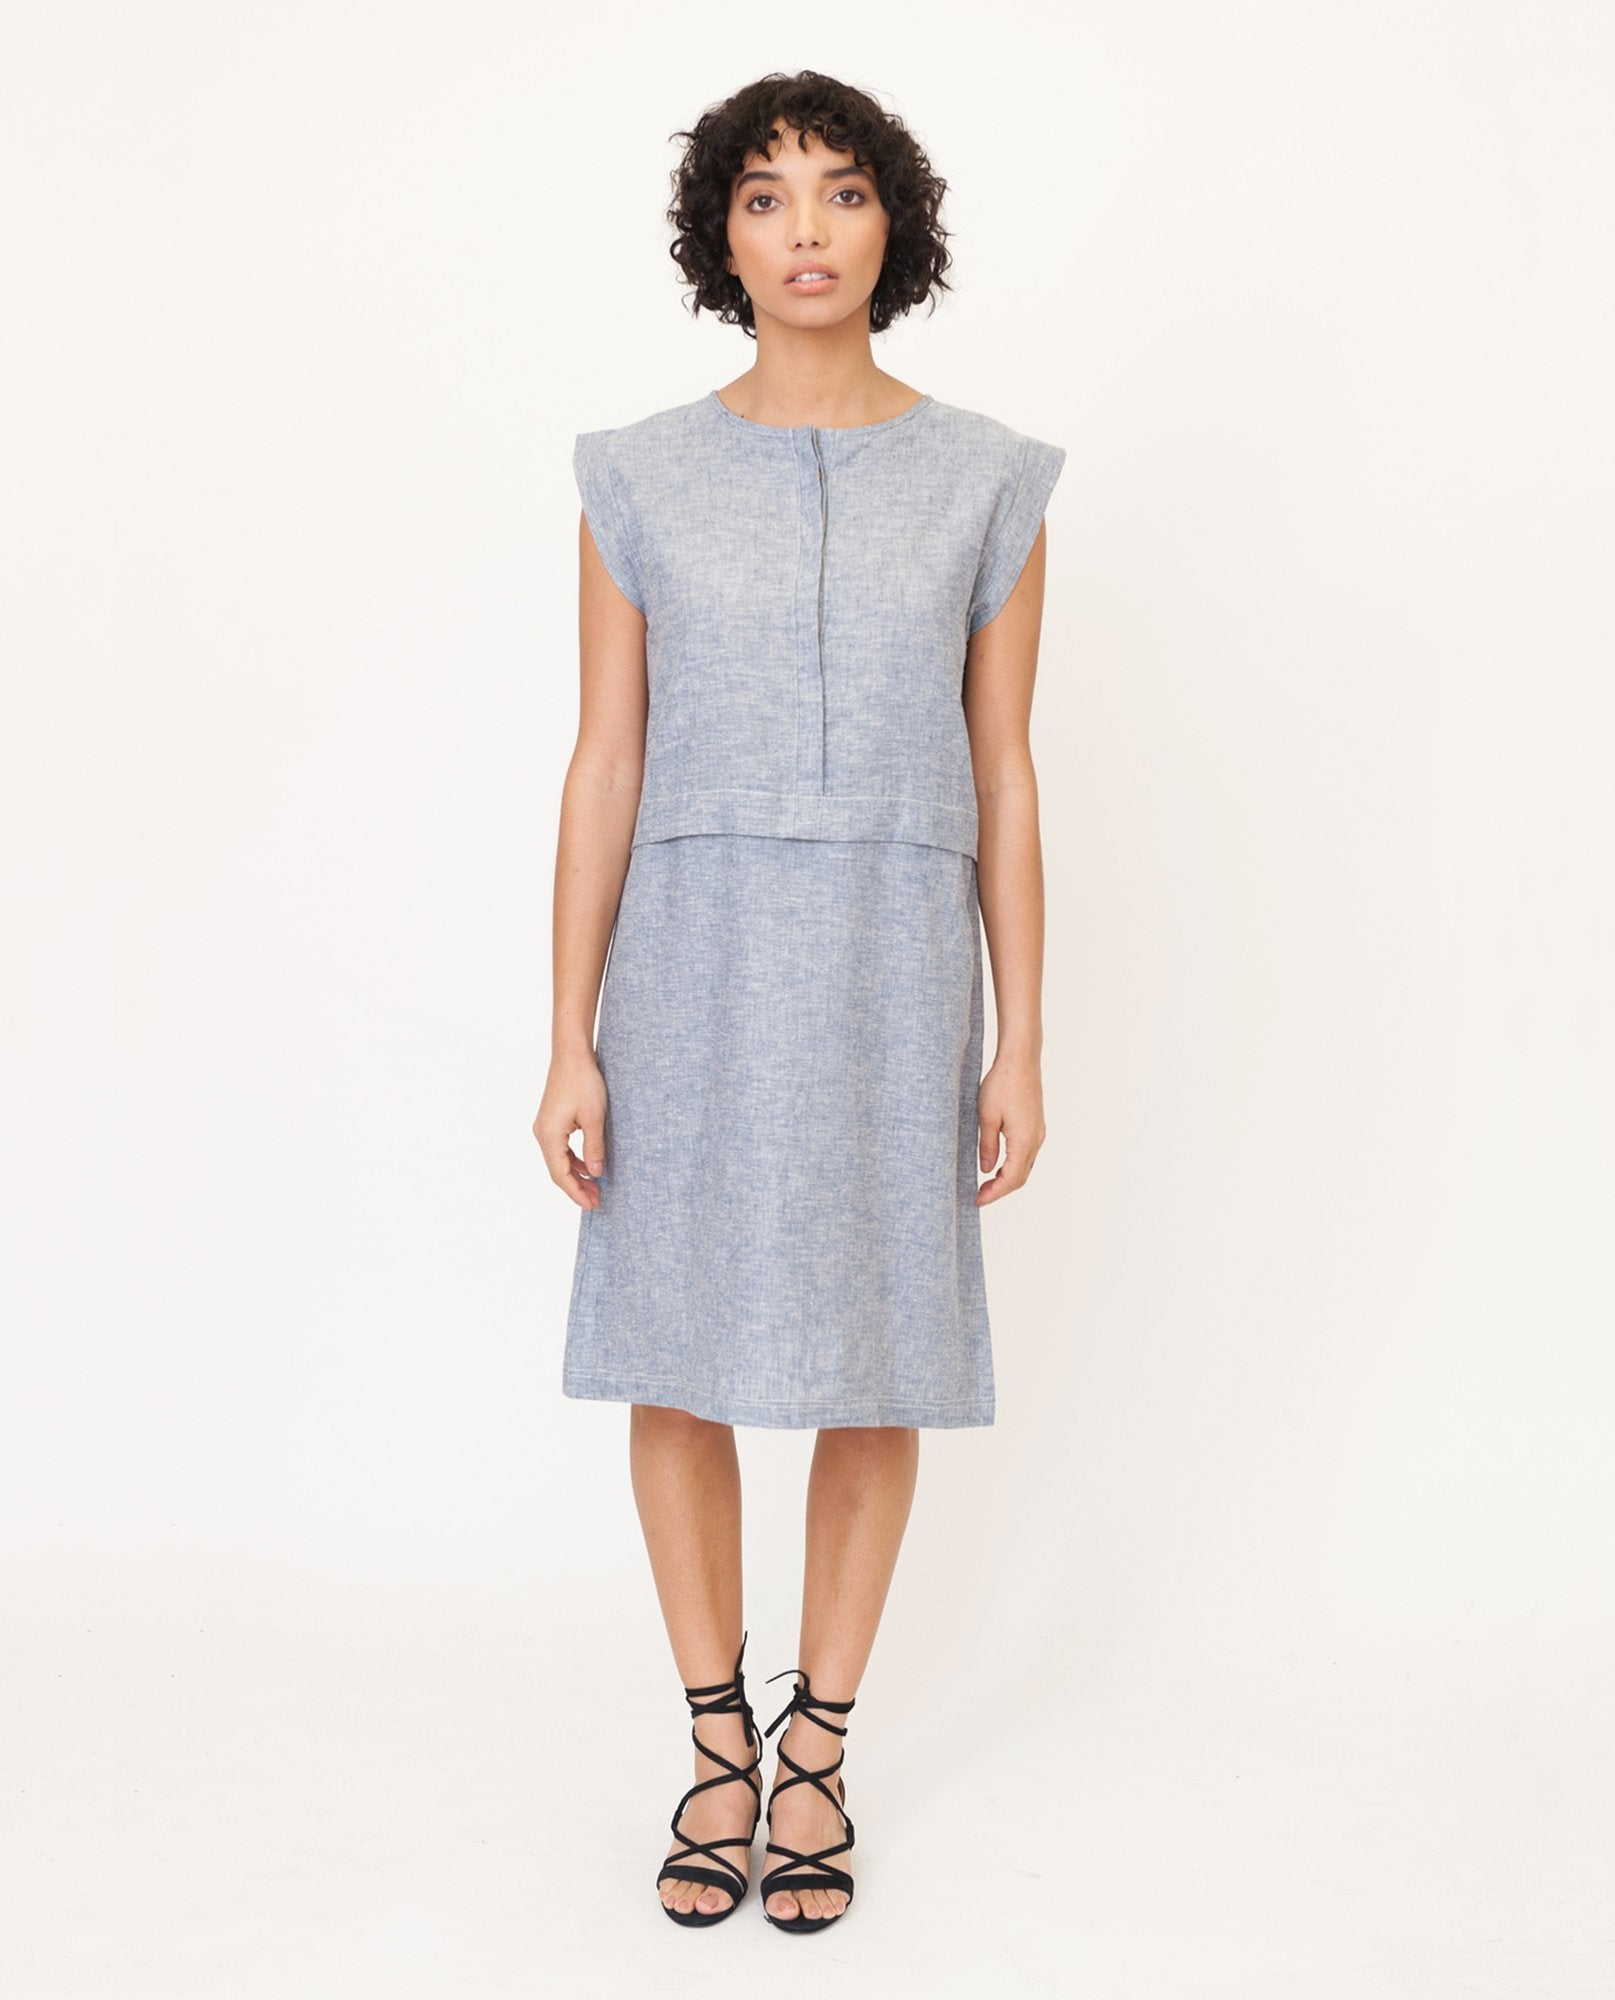 ADELE-JANE Hemp And Organic Cotton Dress In Navy Speckle